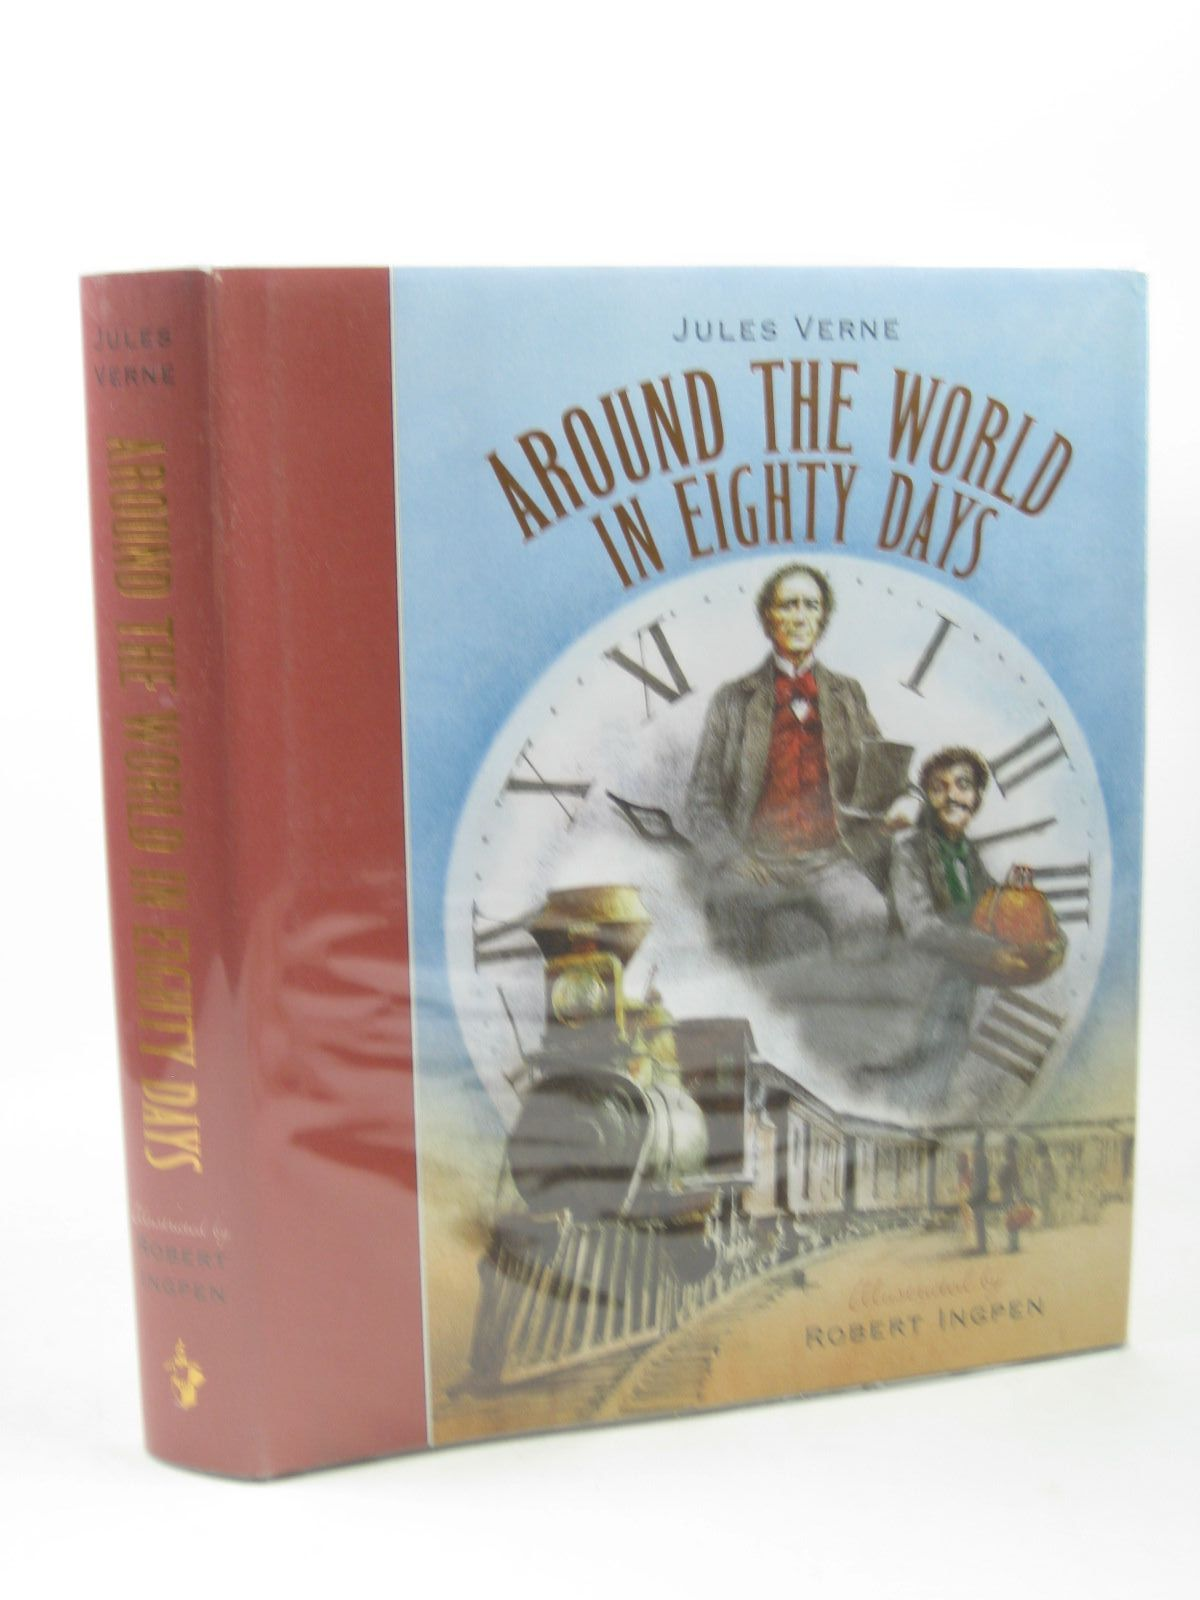 Photo of AROUND THE WORLD IN EIGHTY DAYS written by Verne, Jules illustrated by Ingpen, Robert published by Templar Publishing (STOCK CODE: 1312659)  for sale by Stella & Rose's Books